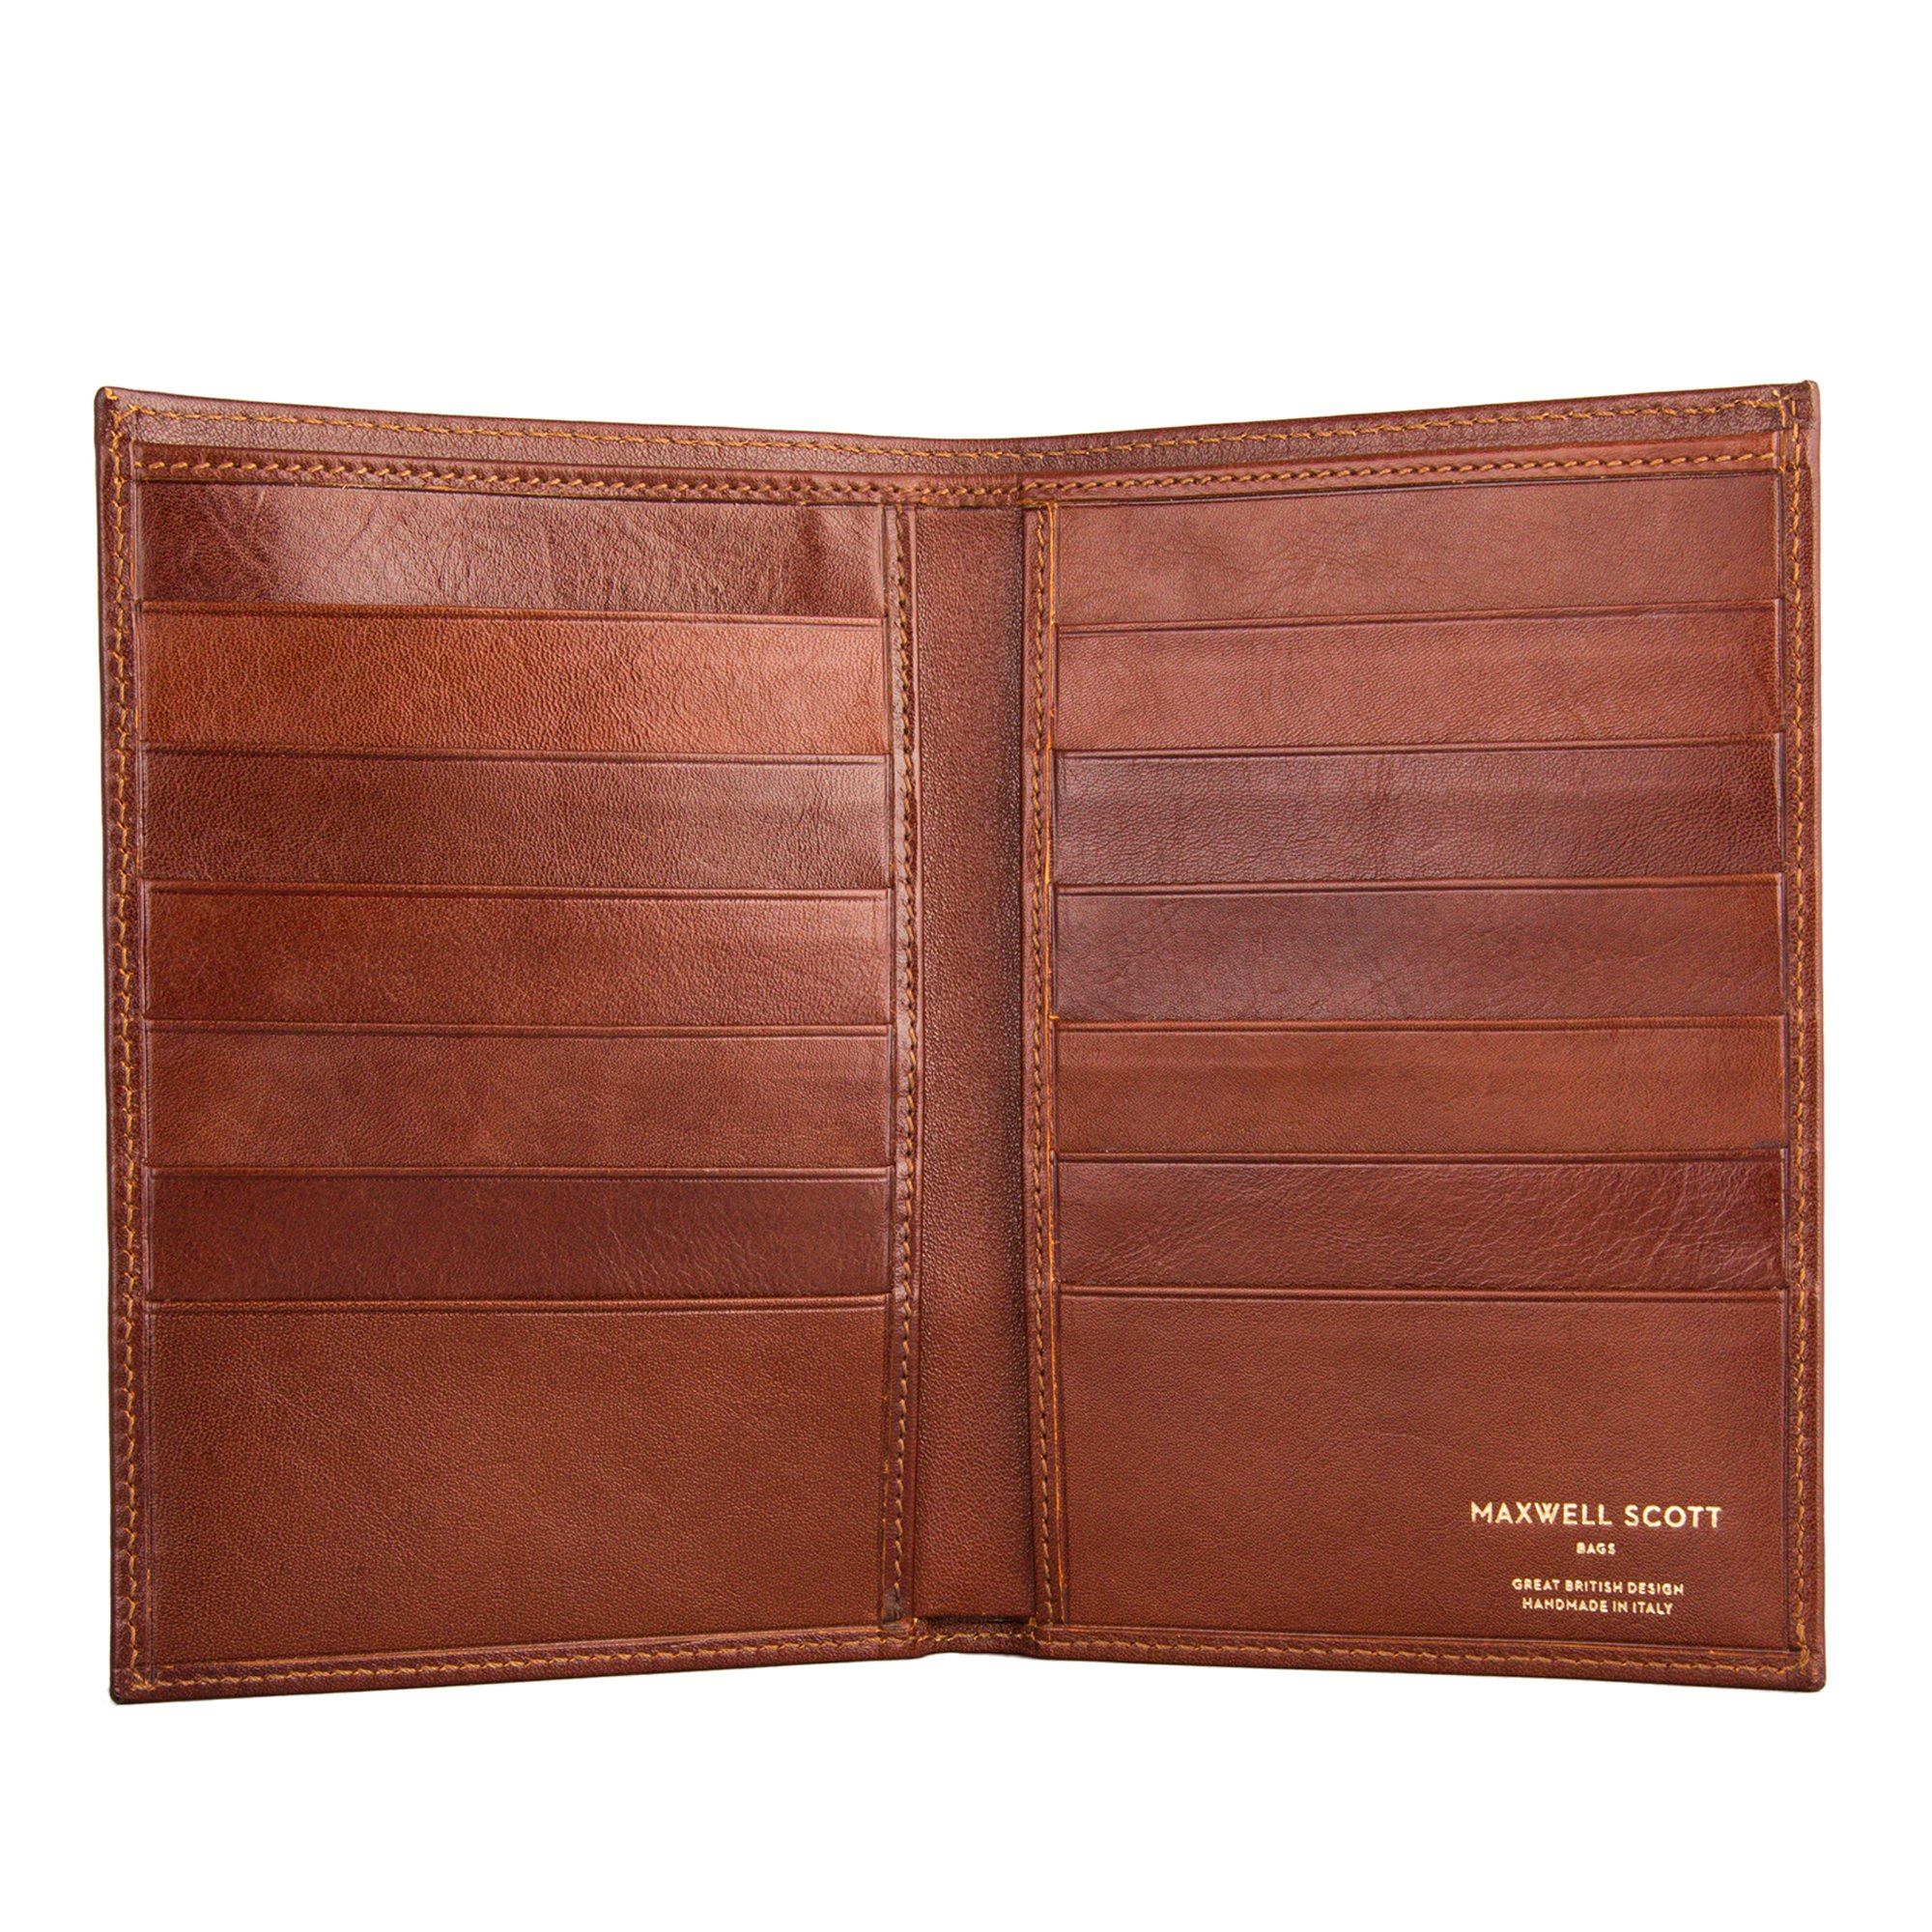 Maxwell Scott Luxury Tan Leather Jacket Wallet - One Size (The Pianillo)